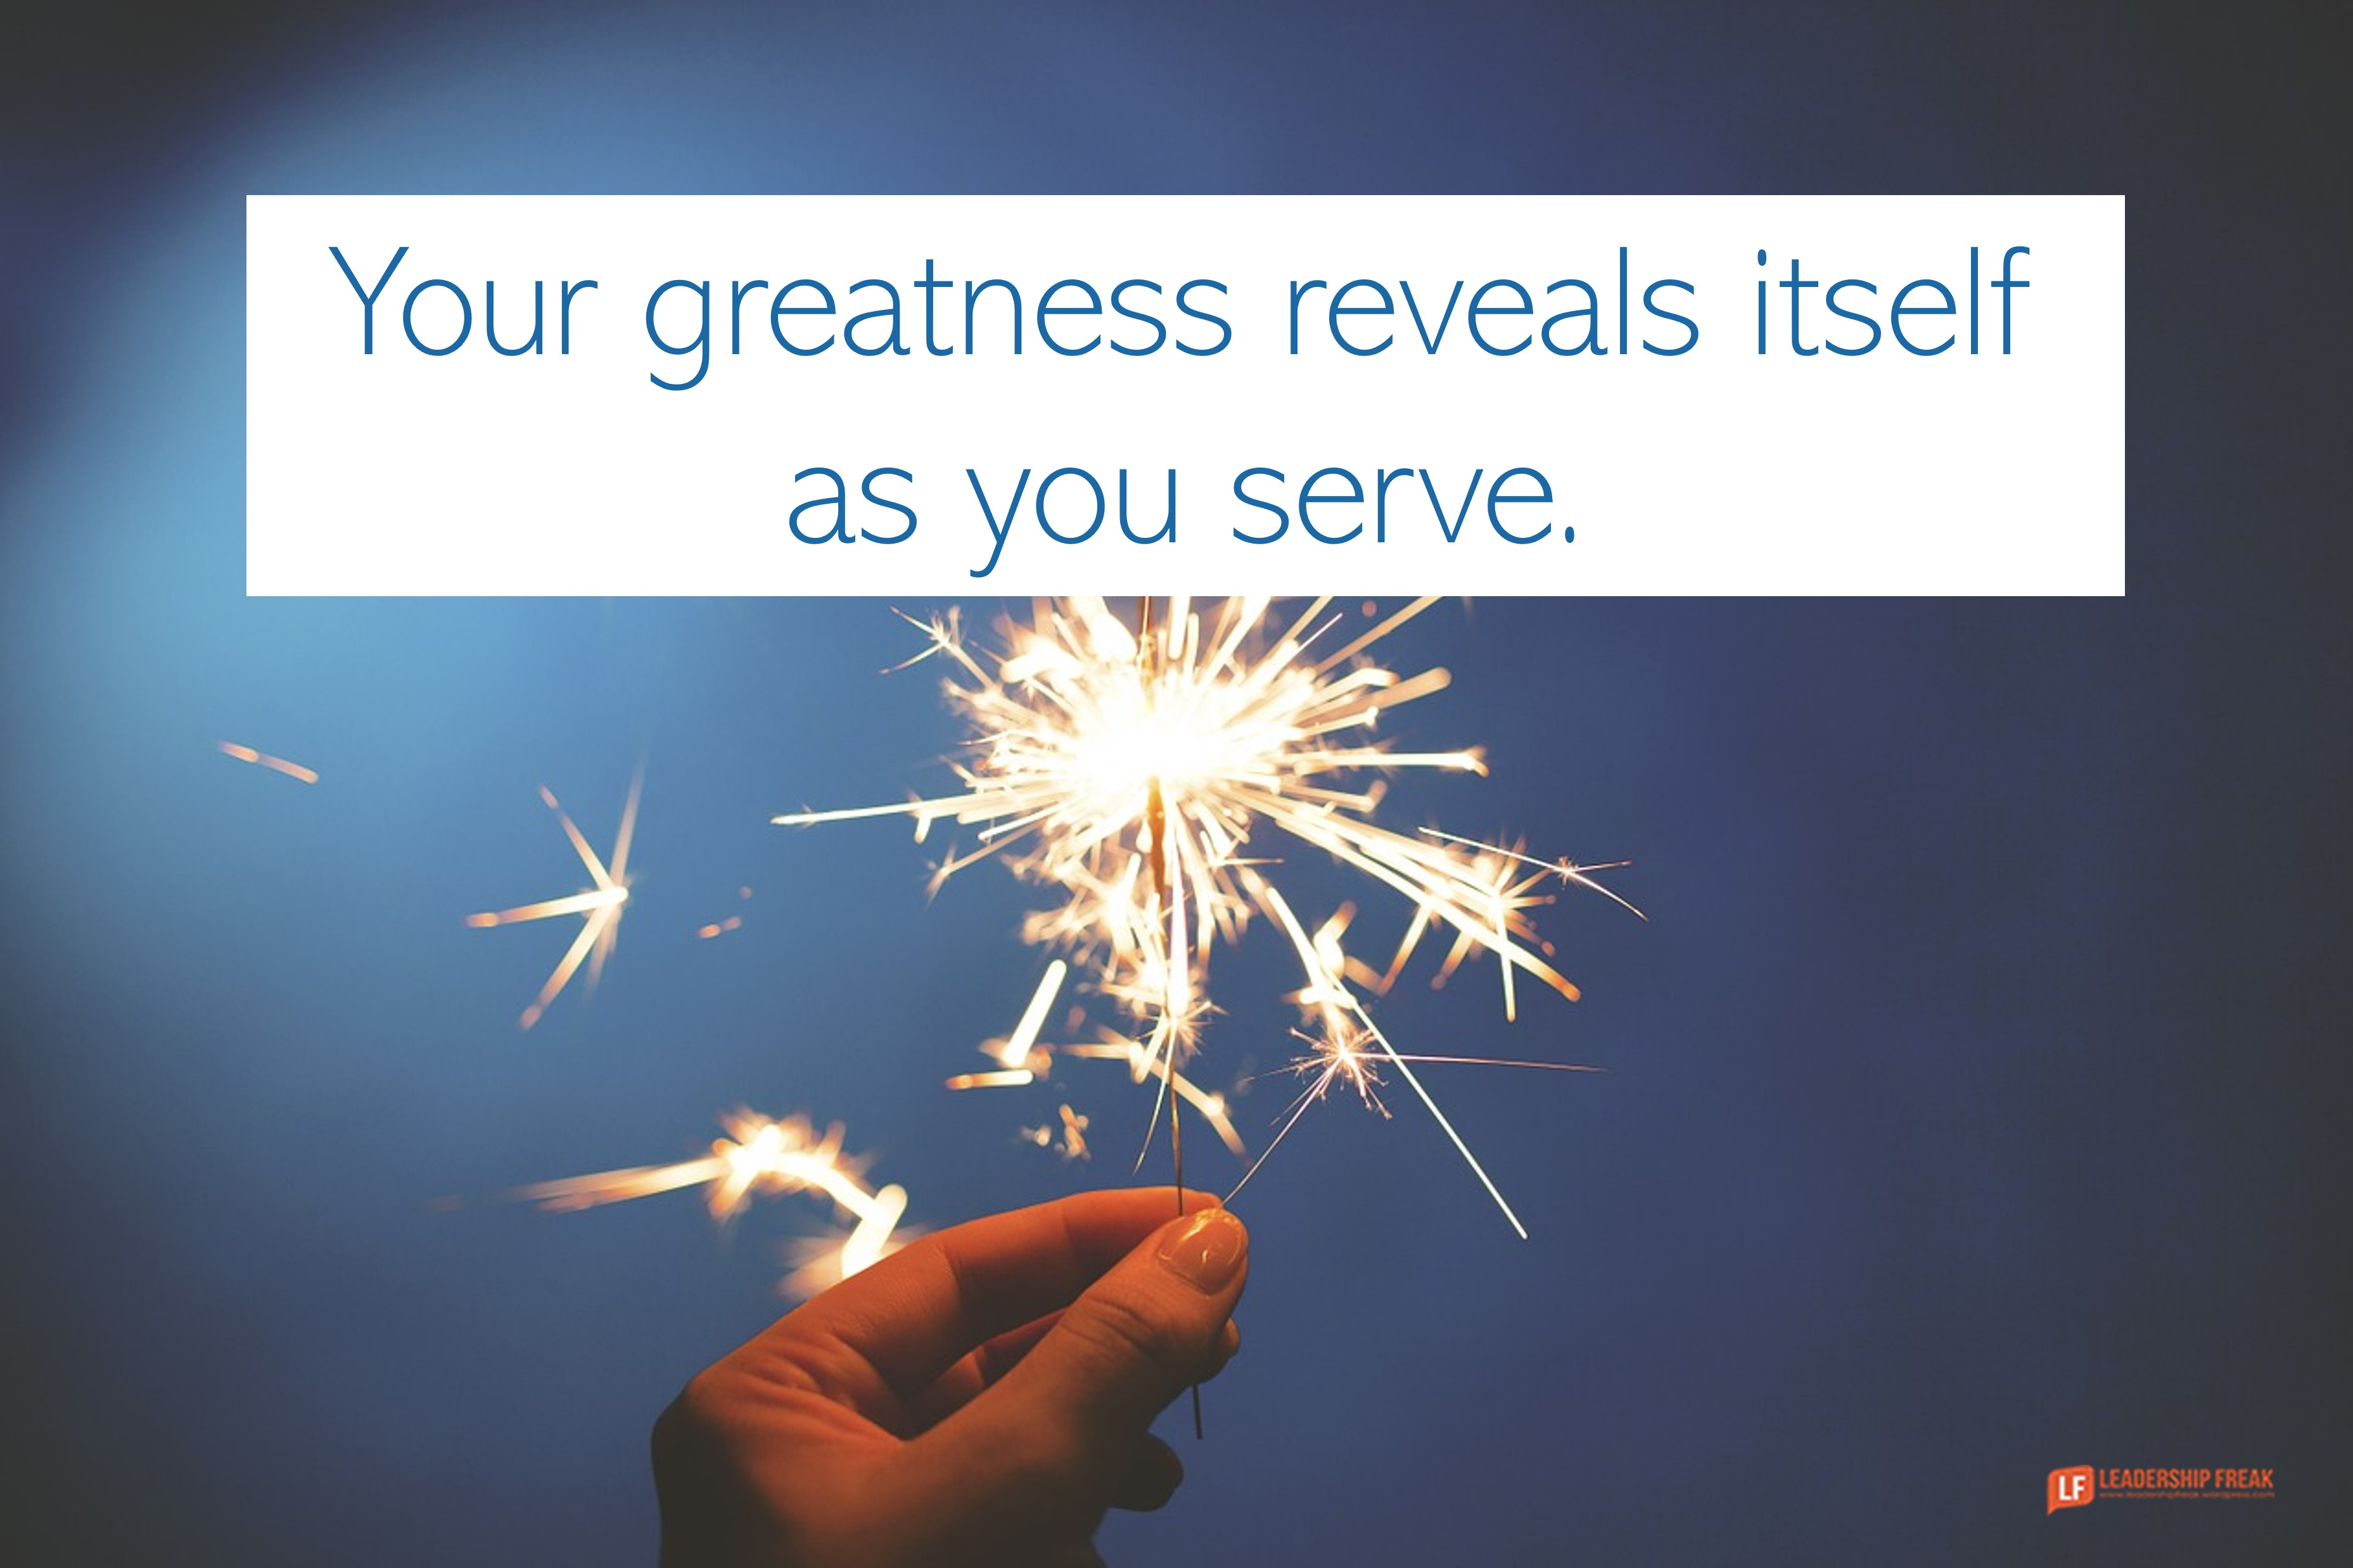 Sparkler   Your greatness reveals itself as you serve.